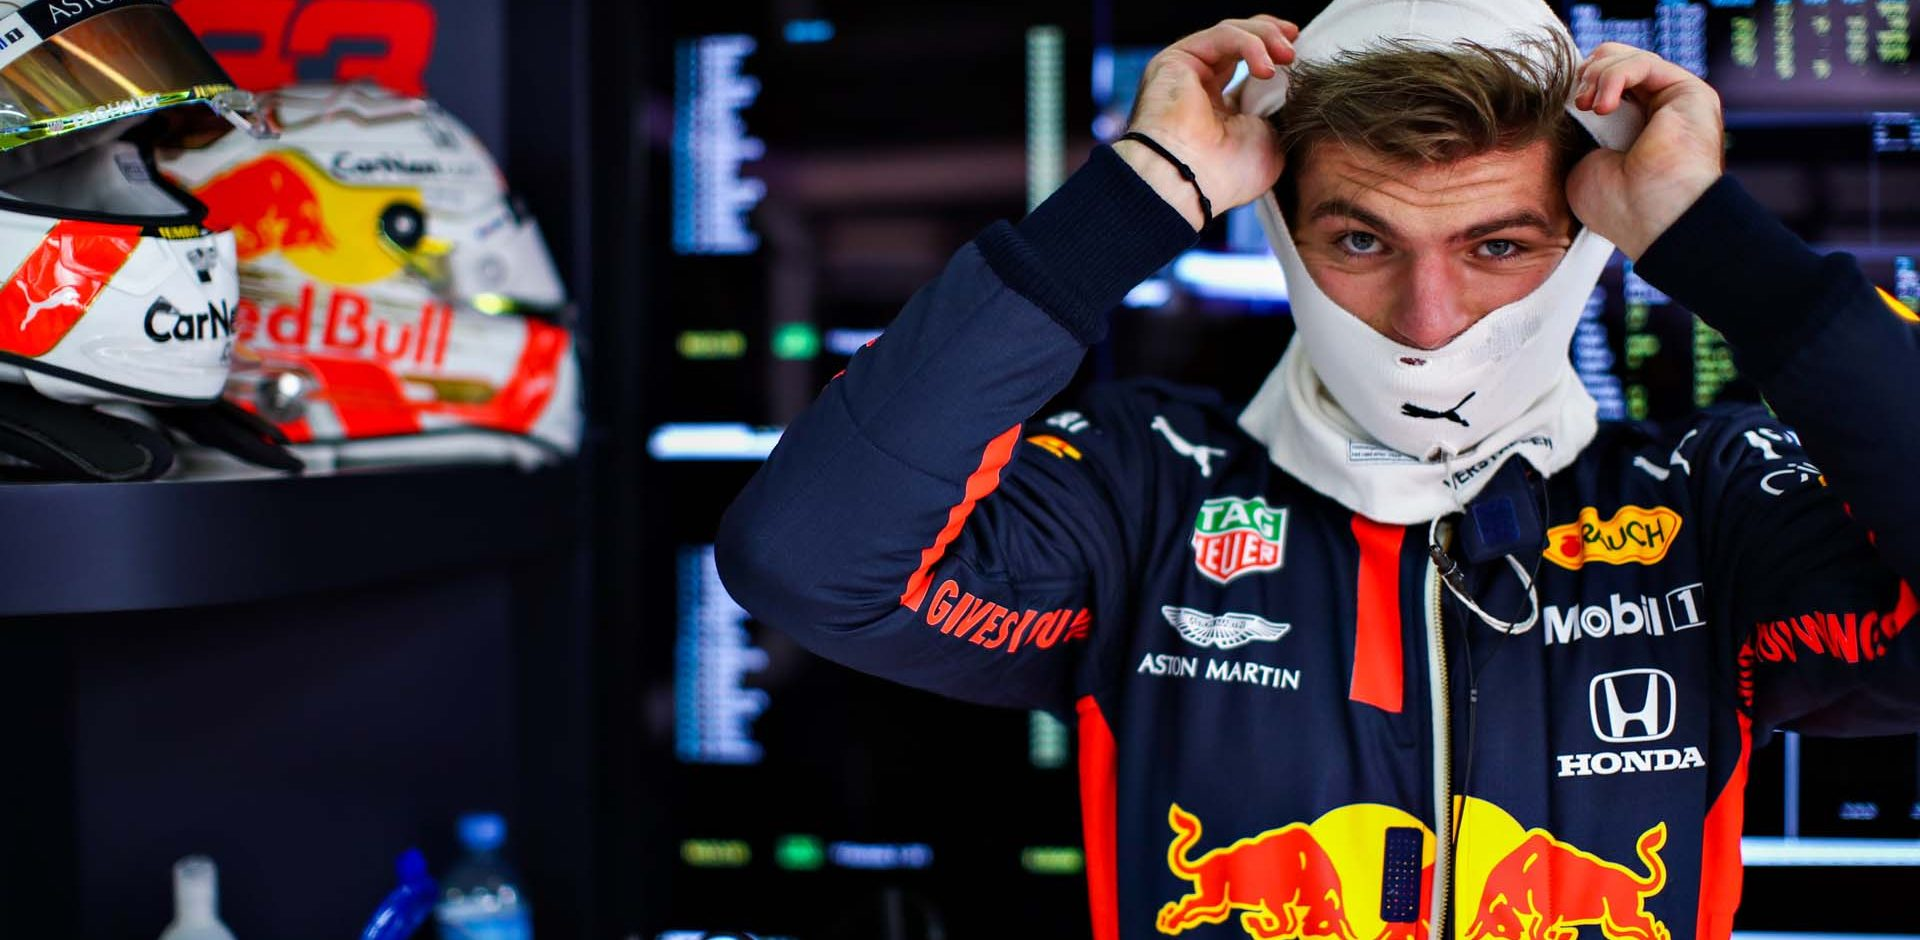 SOCHI, RUSSIA - SEPTEMBER 25: Max Verstappen of Netherlands and Red Bull Racing prepares to drive during practice ahead of the F1 Grand Prix of Russia at Sochi Autodrom on September 25, 2020 in Sochi, Russia. (Photo by Mark Thompson/Getty Images)